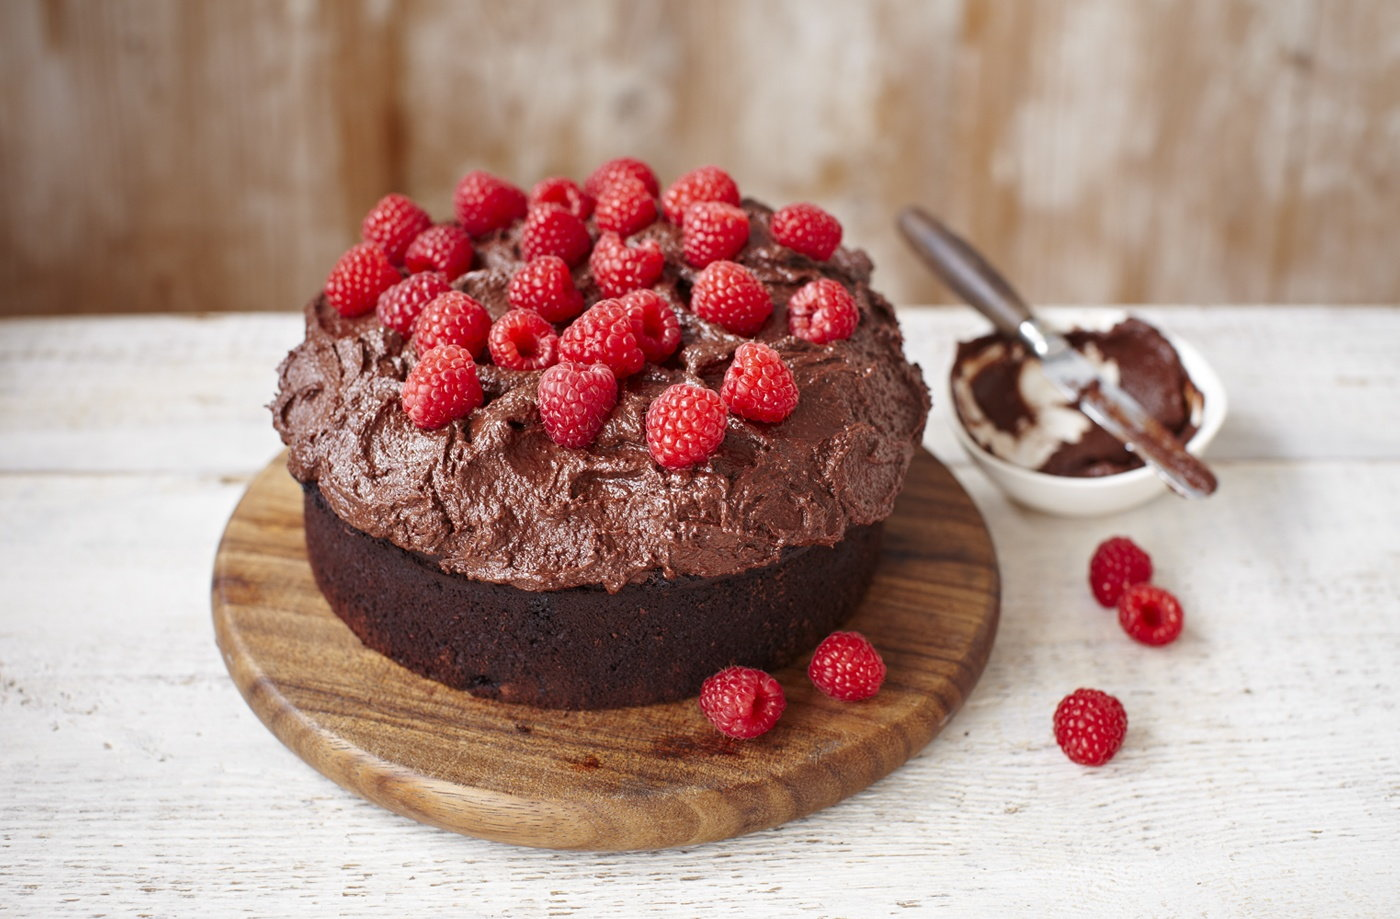 Gluten Free Chocolate Sponge Cake Recipes Uk: Vegan Chocolate Cake Recipe